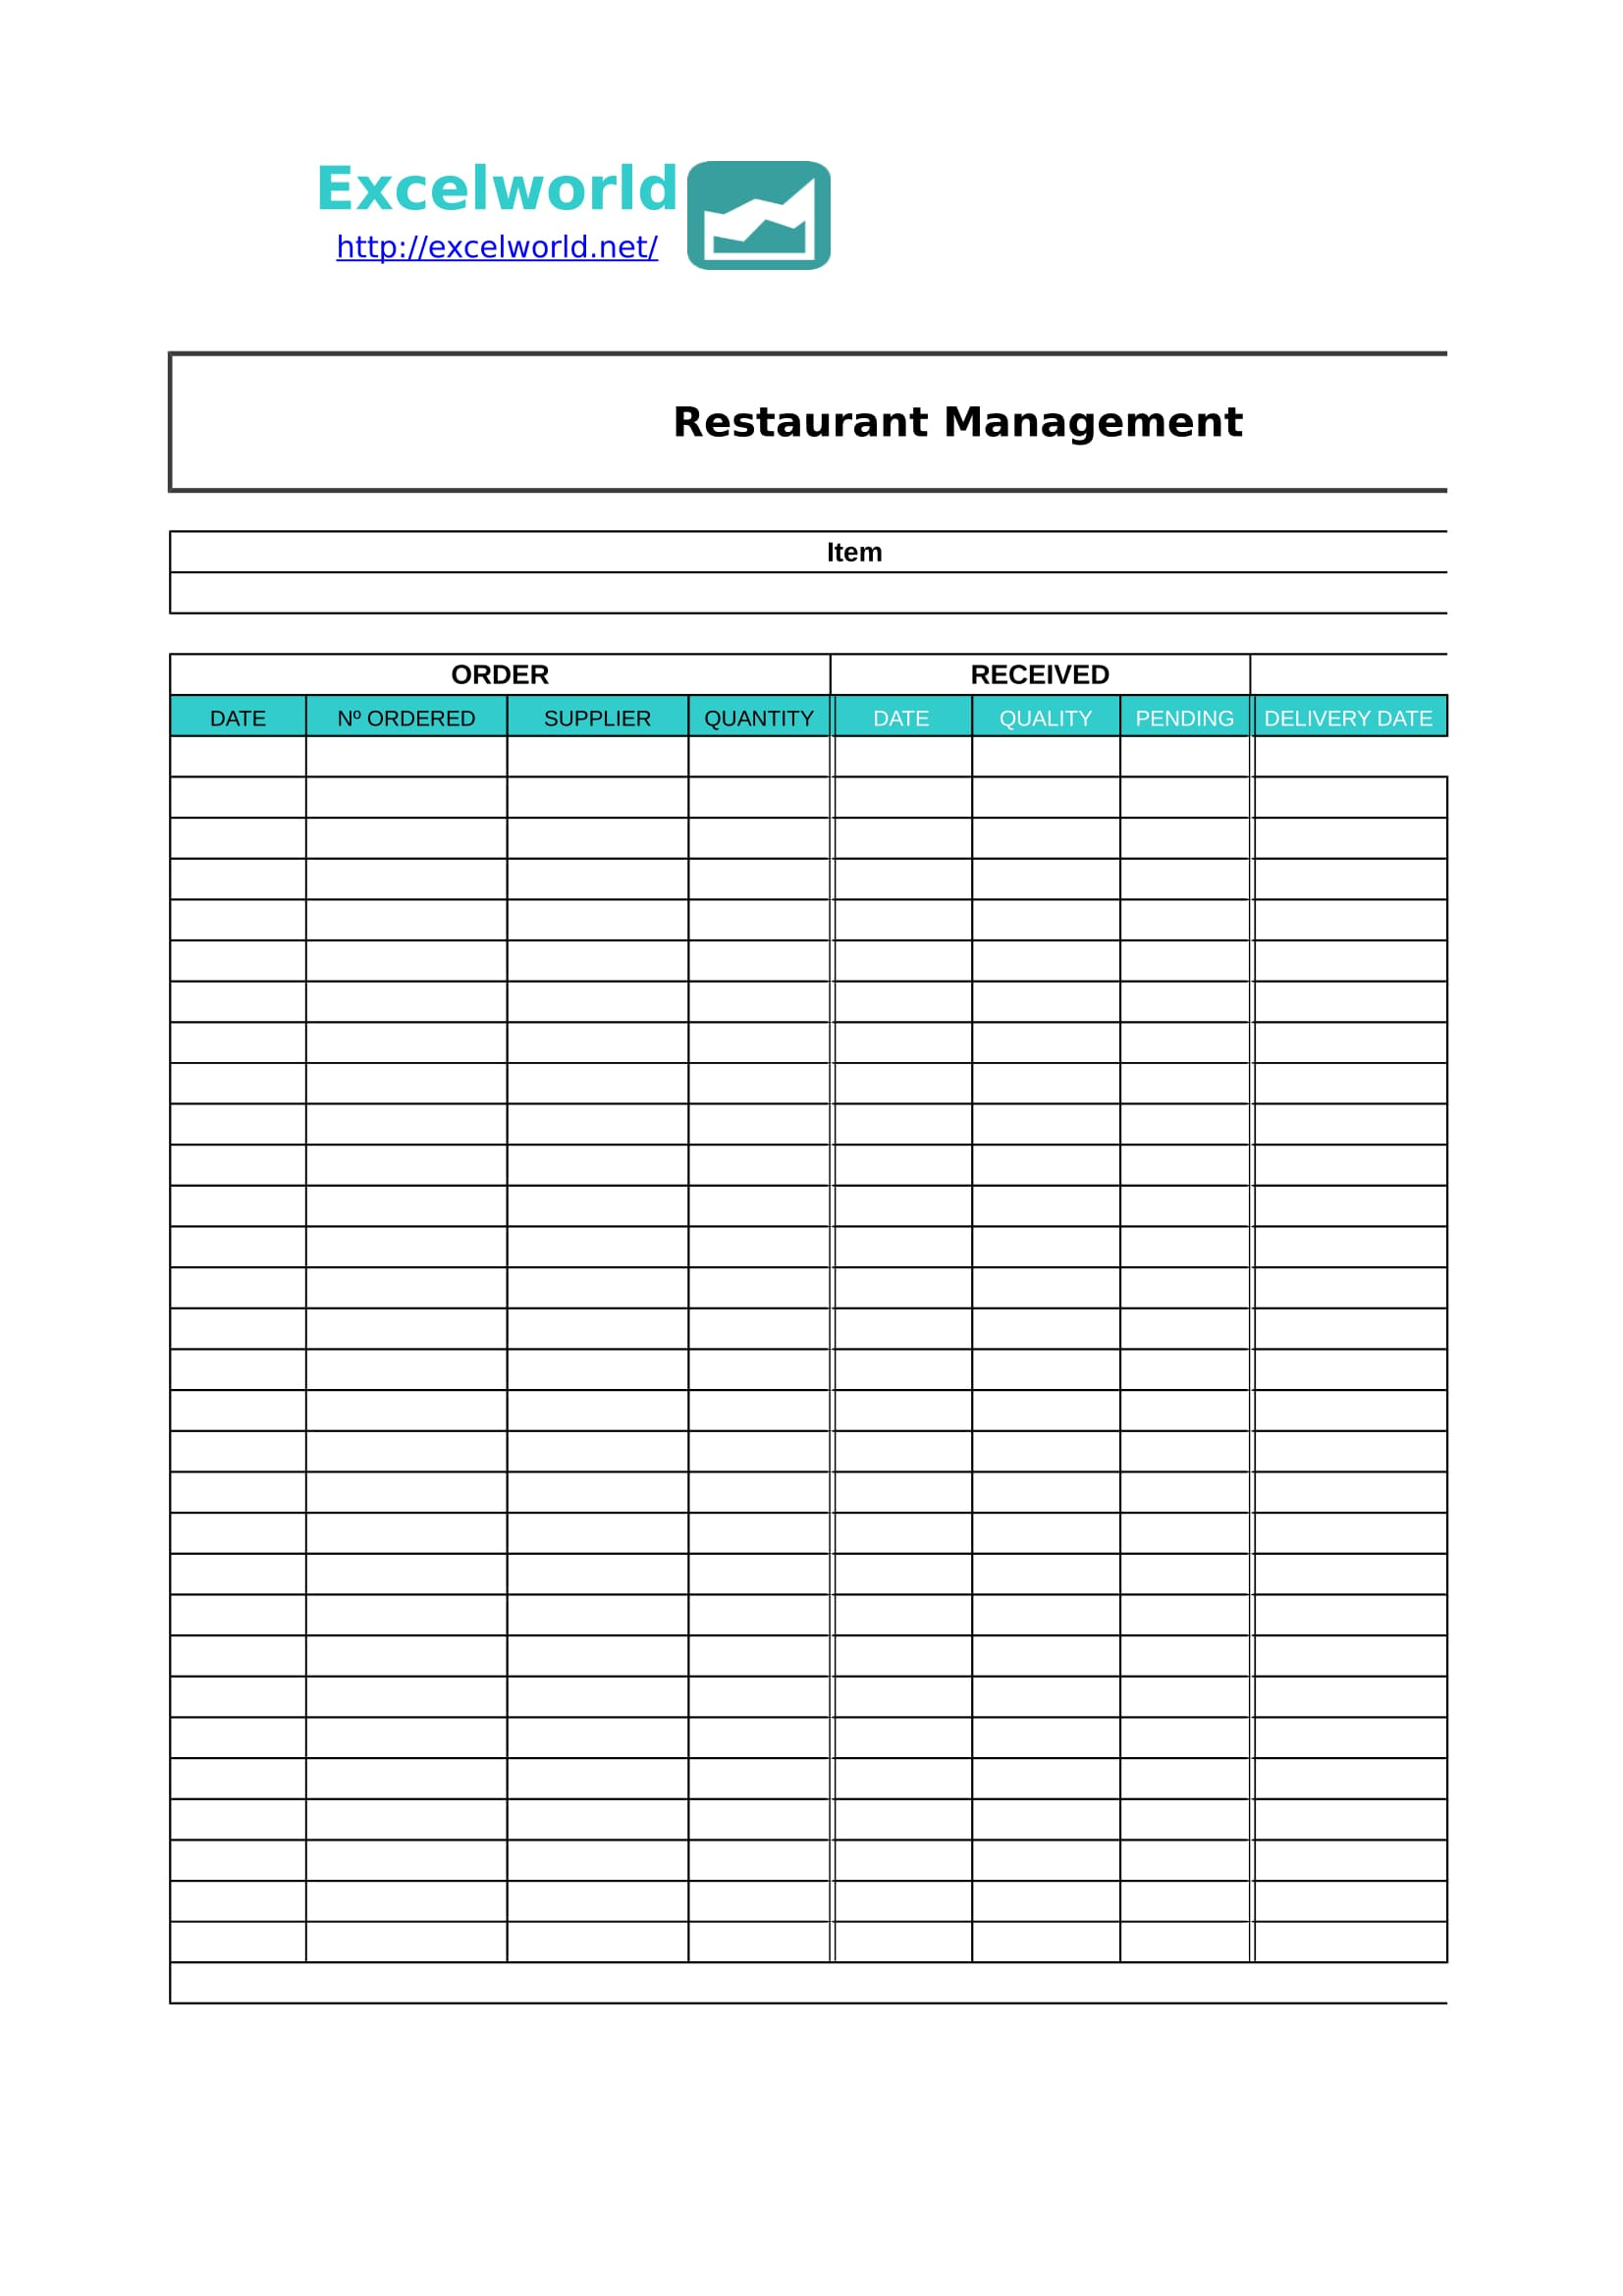 restaurant management template in excel 1